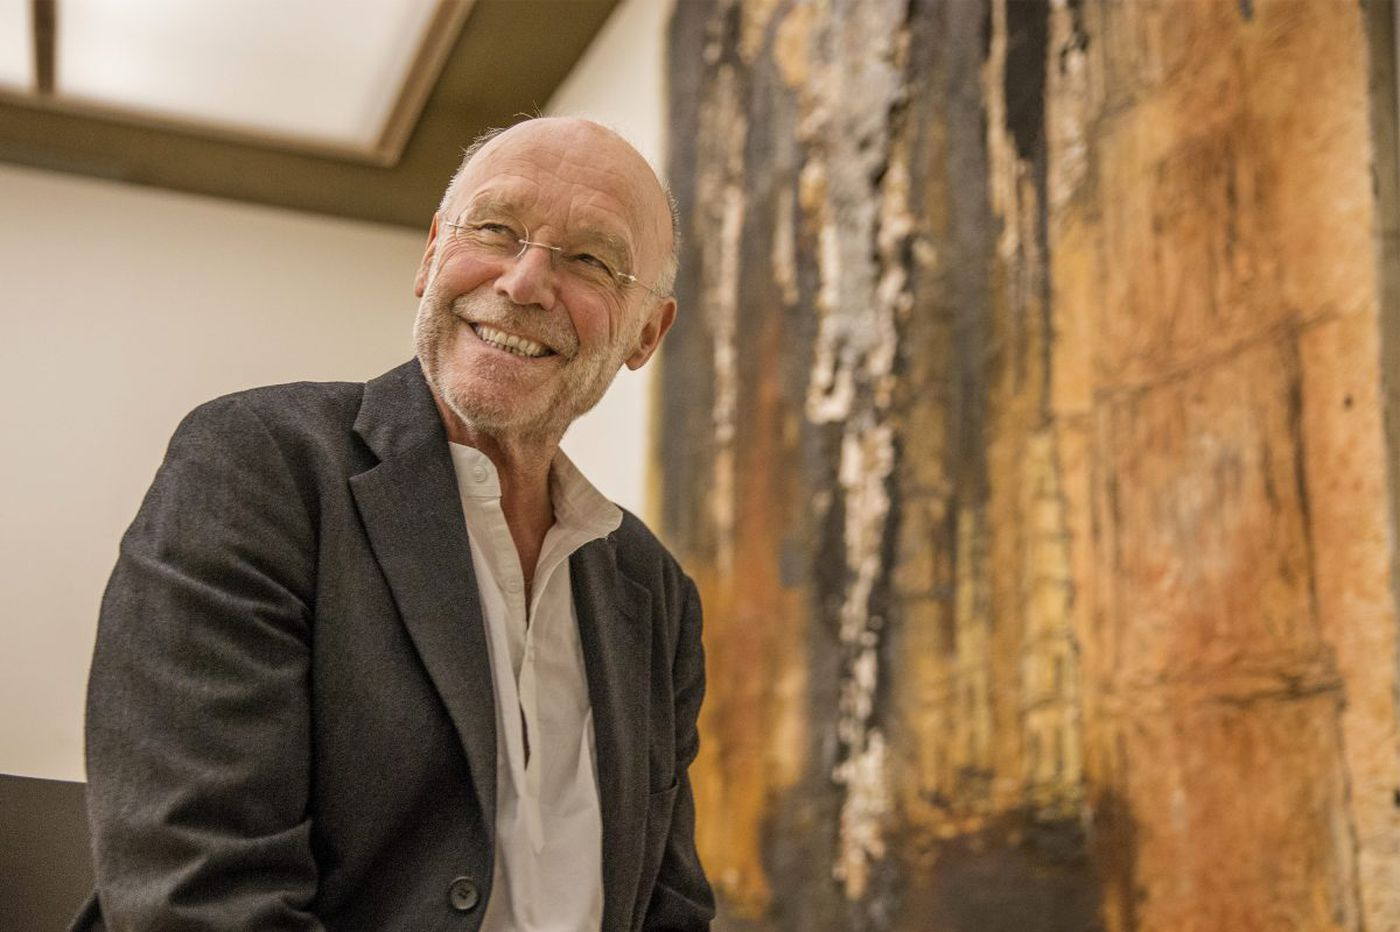 Anselm Kiefer says Auguste Rodin was a creative destroyer, just like him. Their joint show is now at the Barnes.